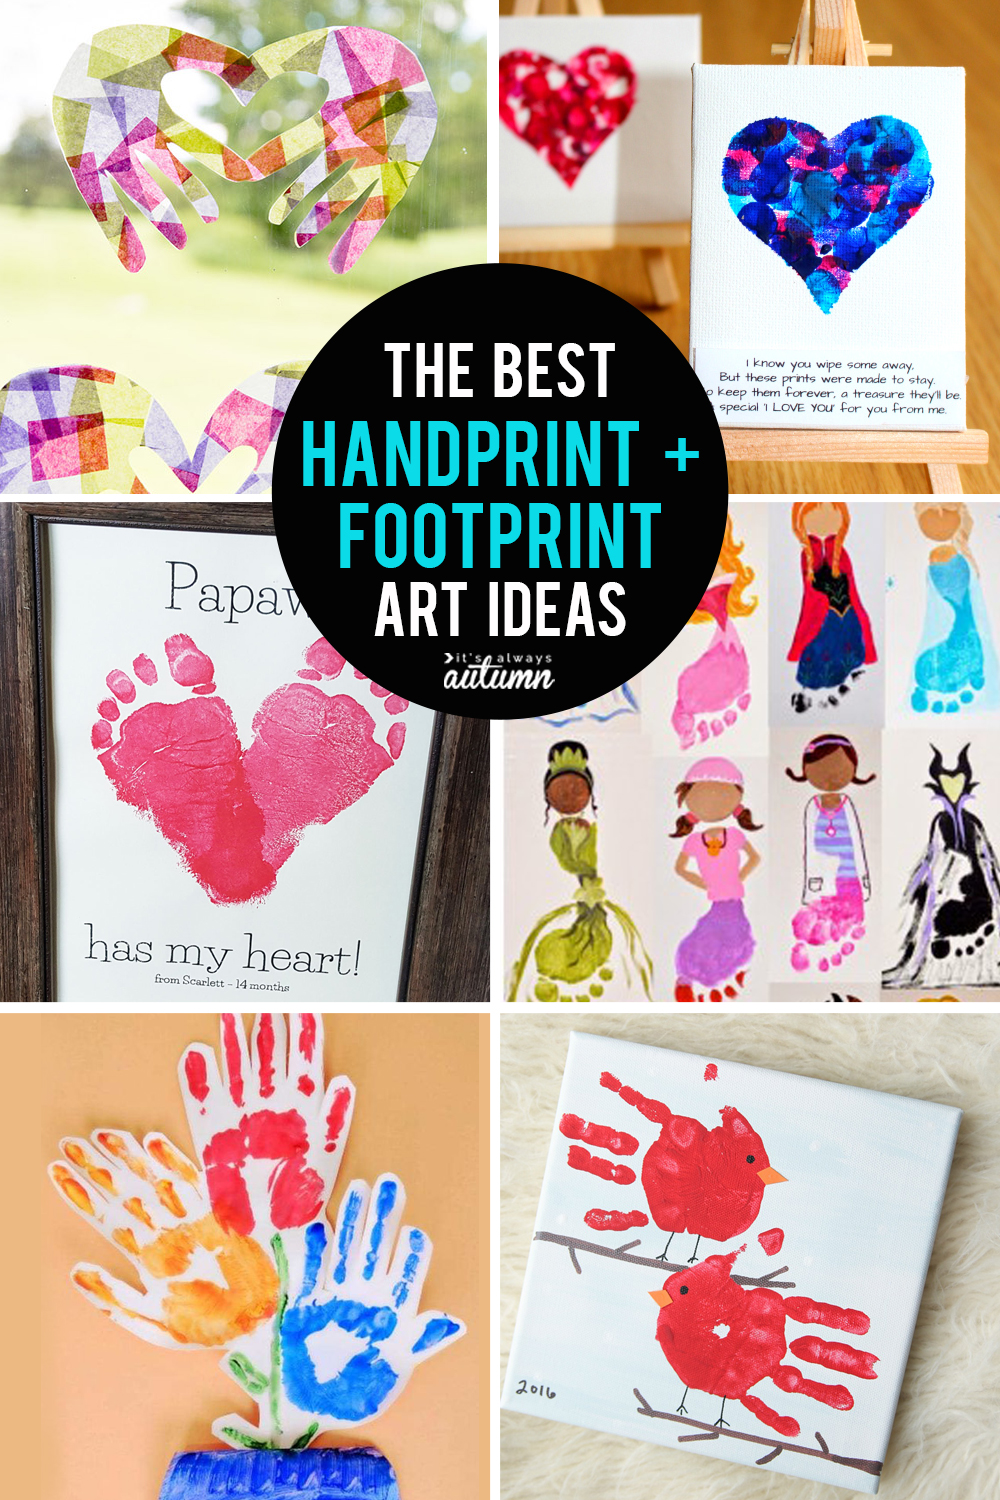 30 best handprint and footprint art ideas